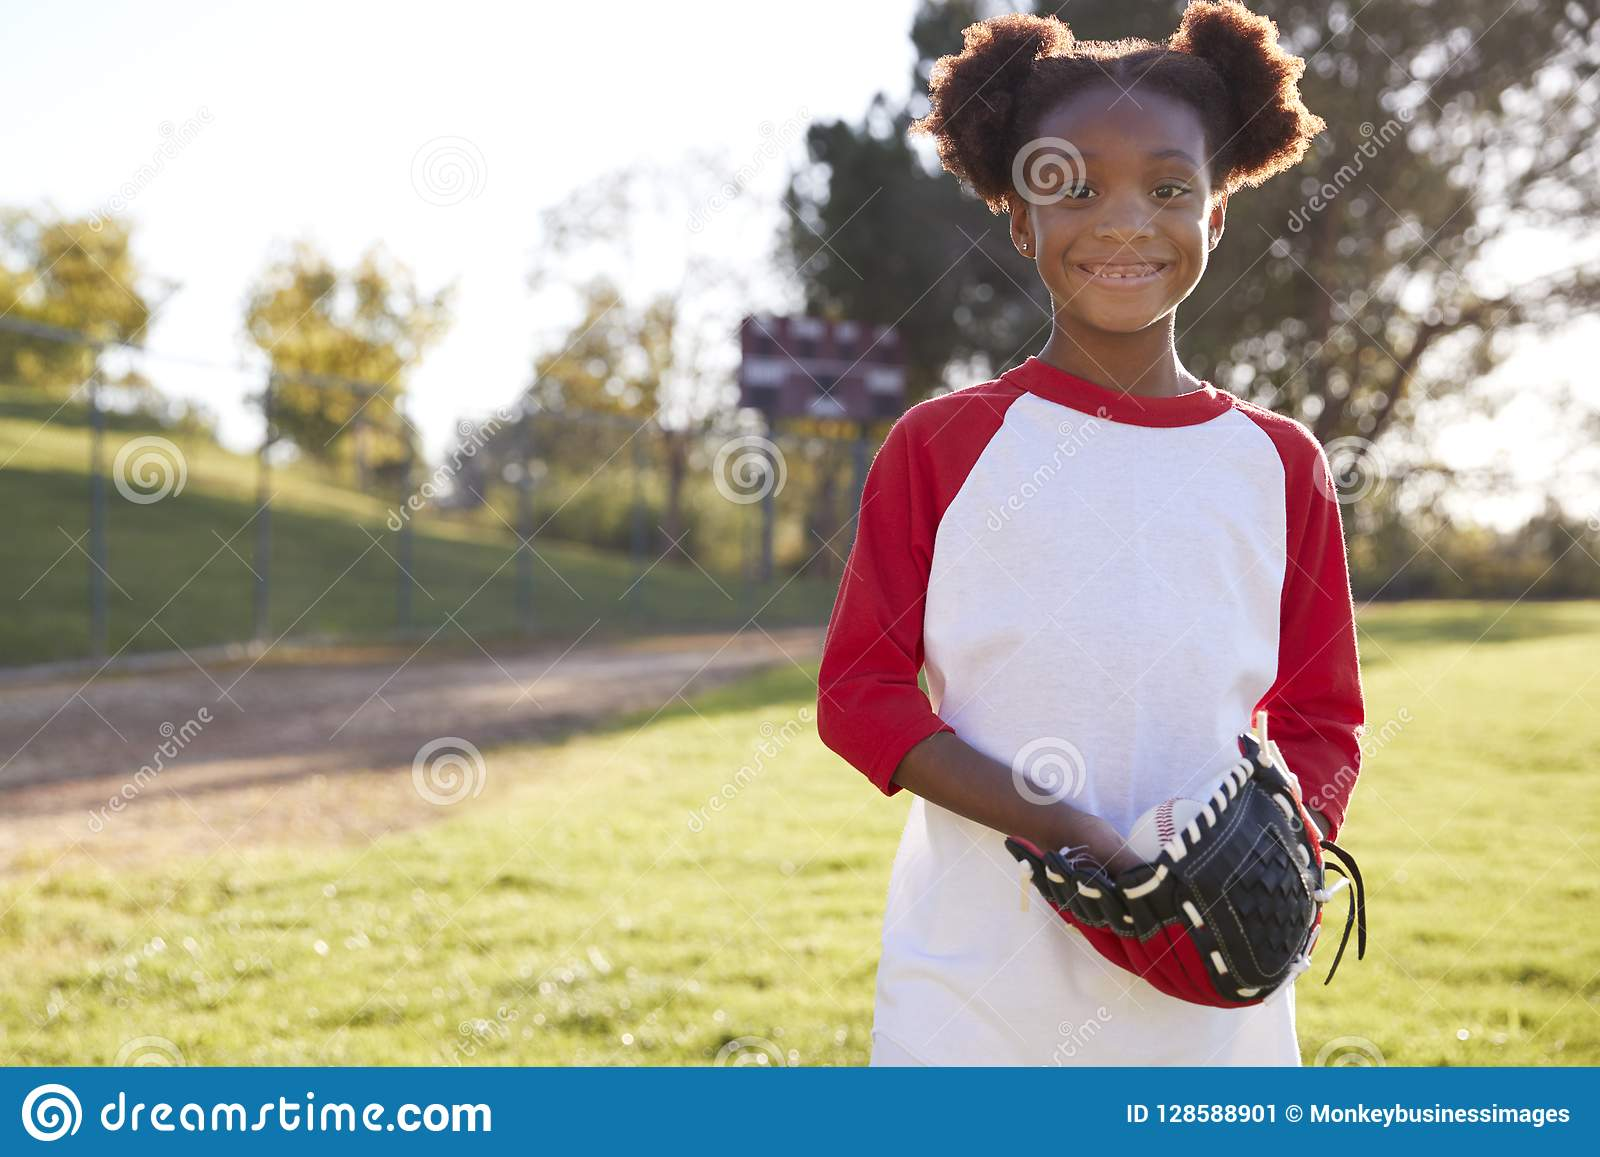 Young Black girl holding baseball mitt smiling to camera